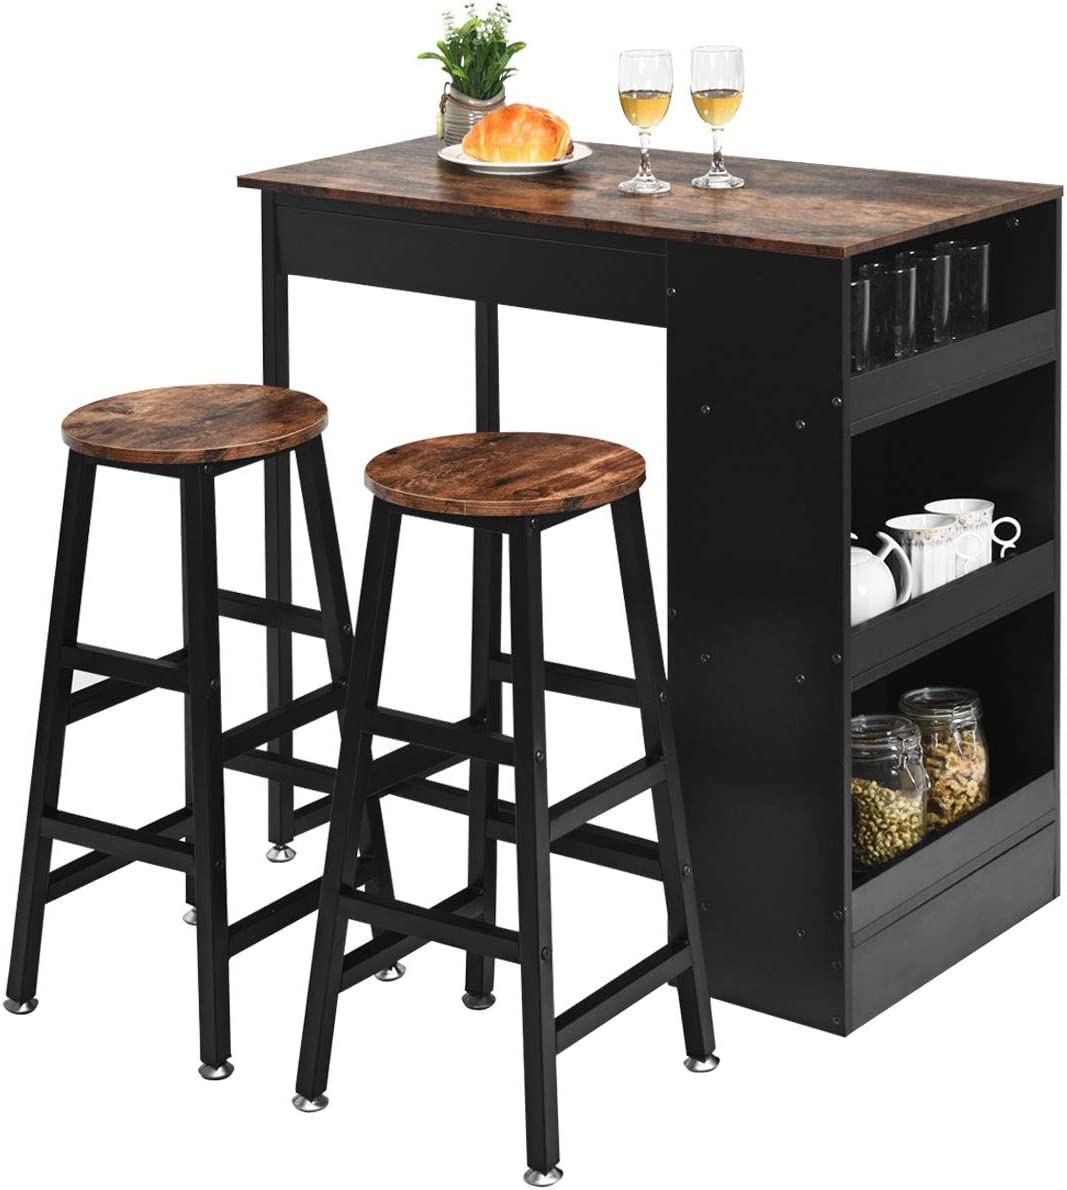 Giantex 3 Piece Pub Dining Set Wooden Counter Height Table Set With 2 Bar Stools Industrial Bar Table Set Sturdy Kitchen Table With Storage For Kitchen Restaurant Living Room Brown Amazon Co Uk Kitchen